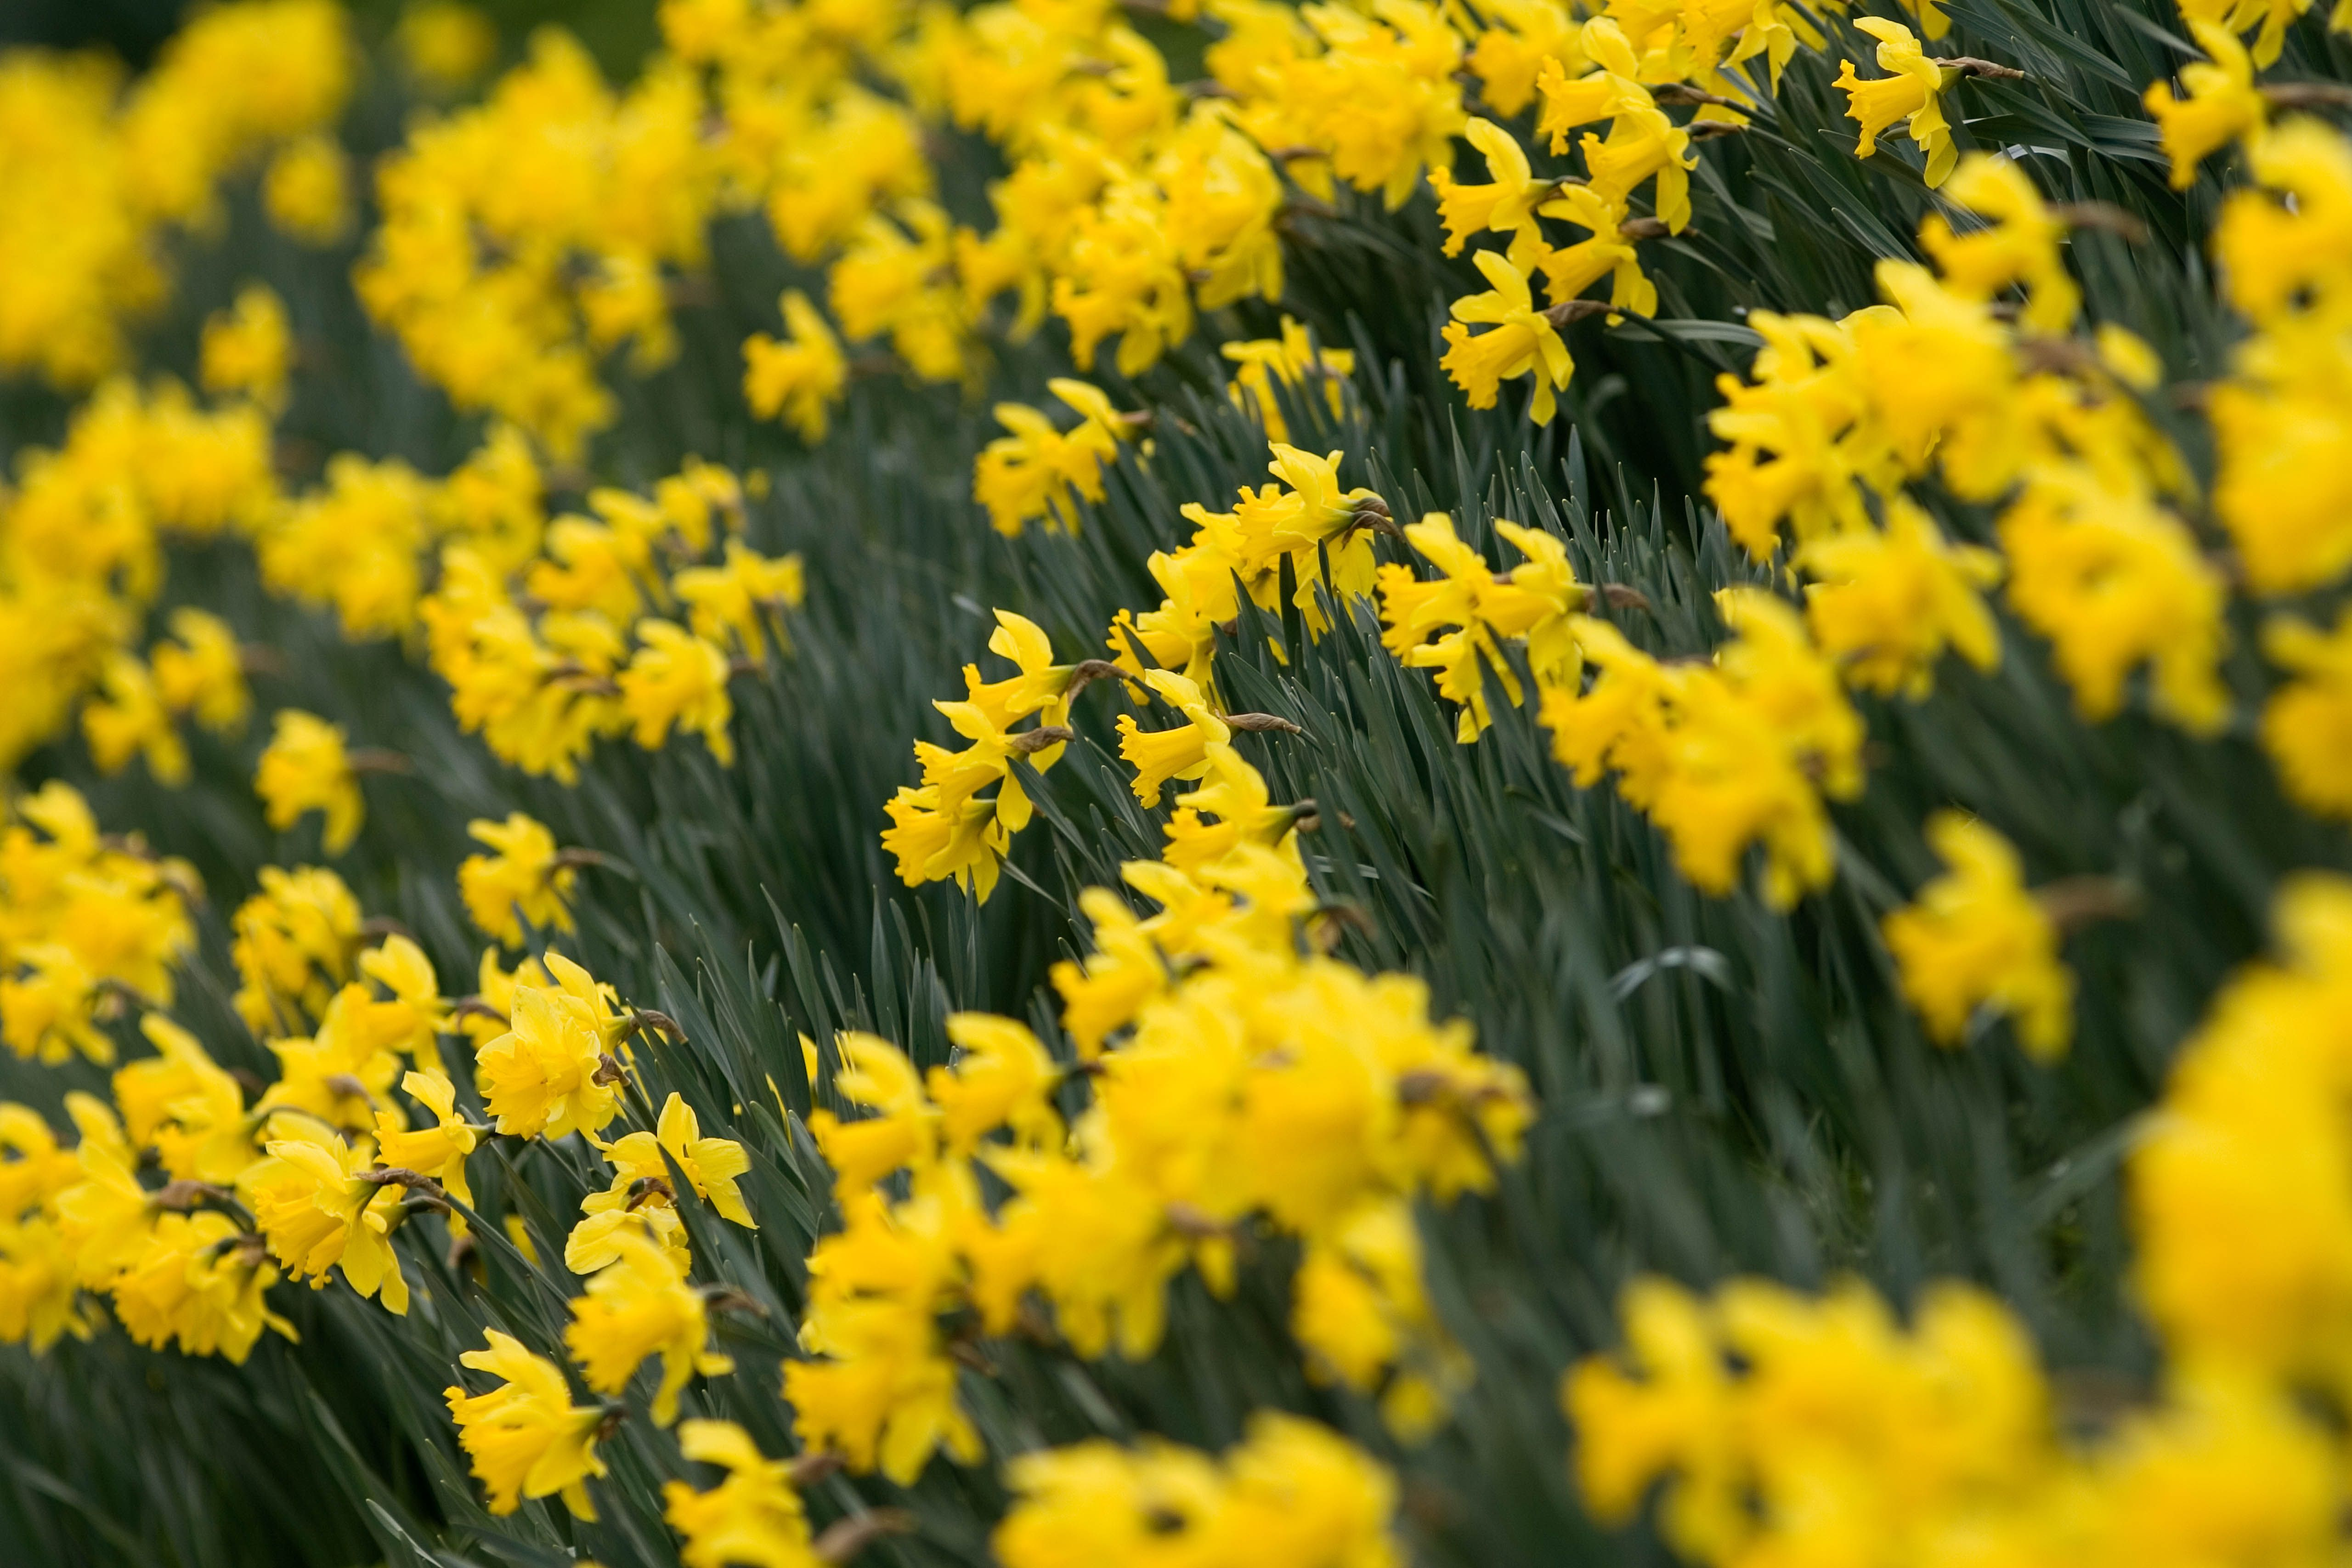 How To Plant Daffodils Daffodil Bulb Care